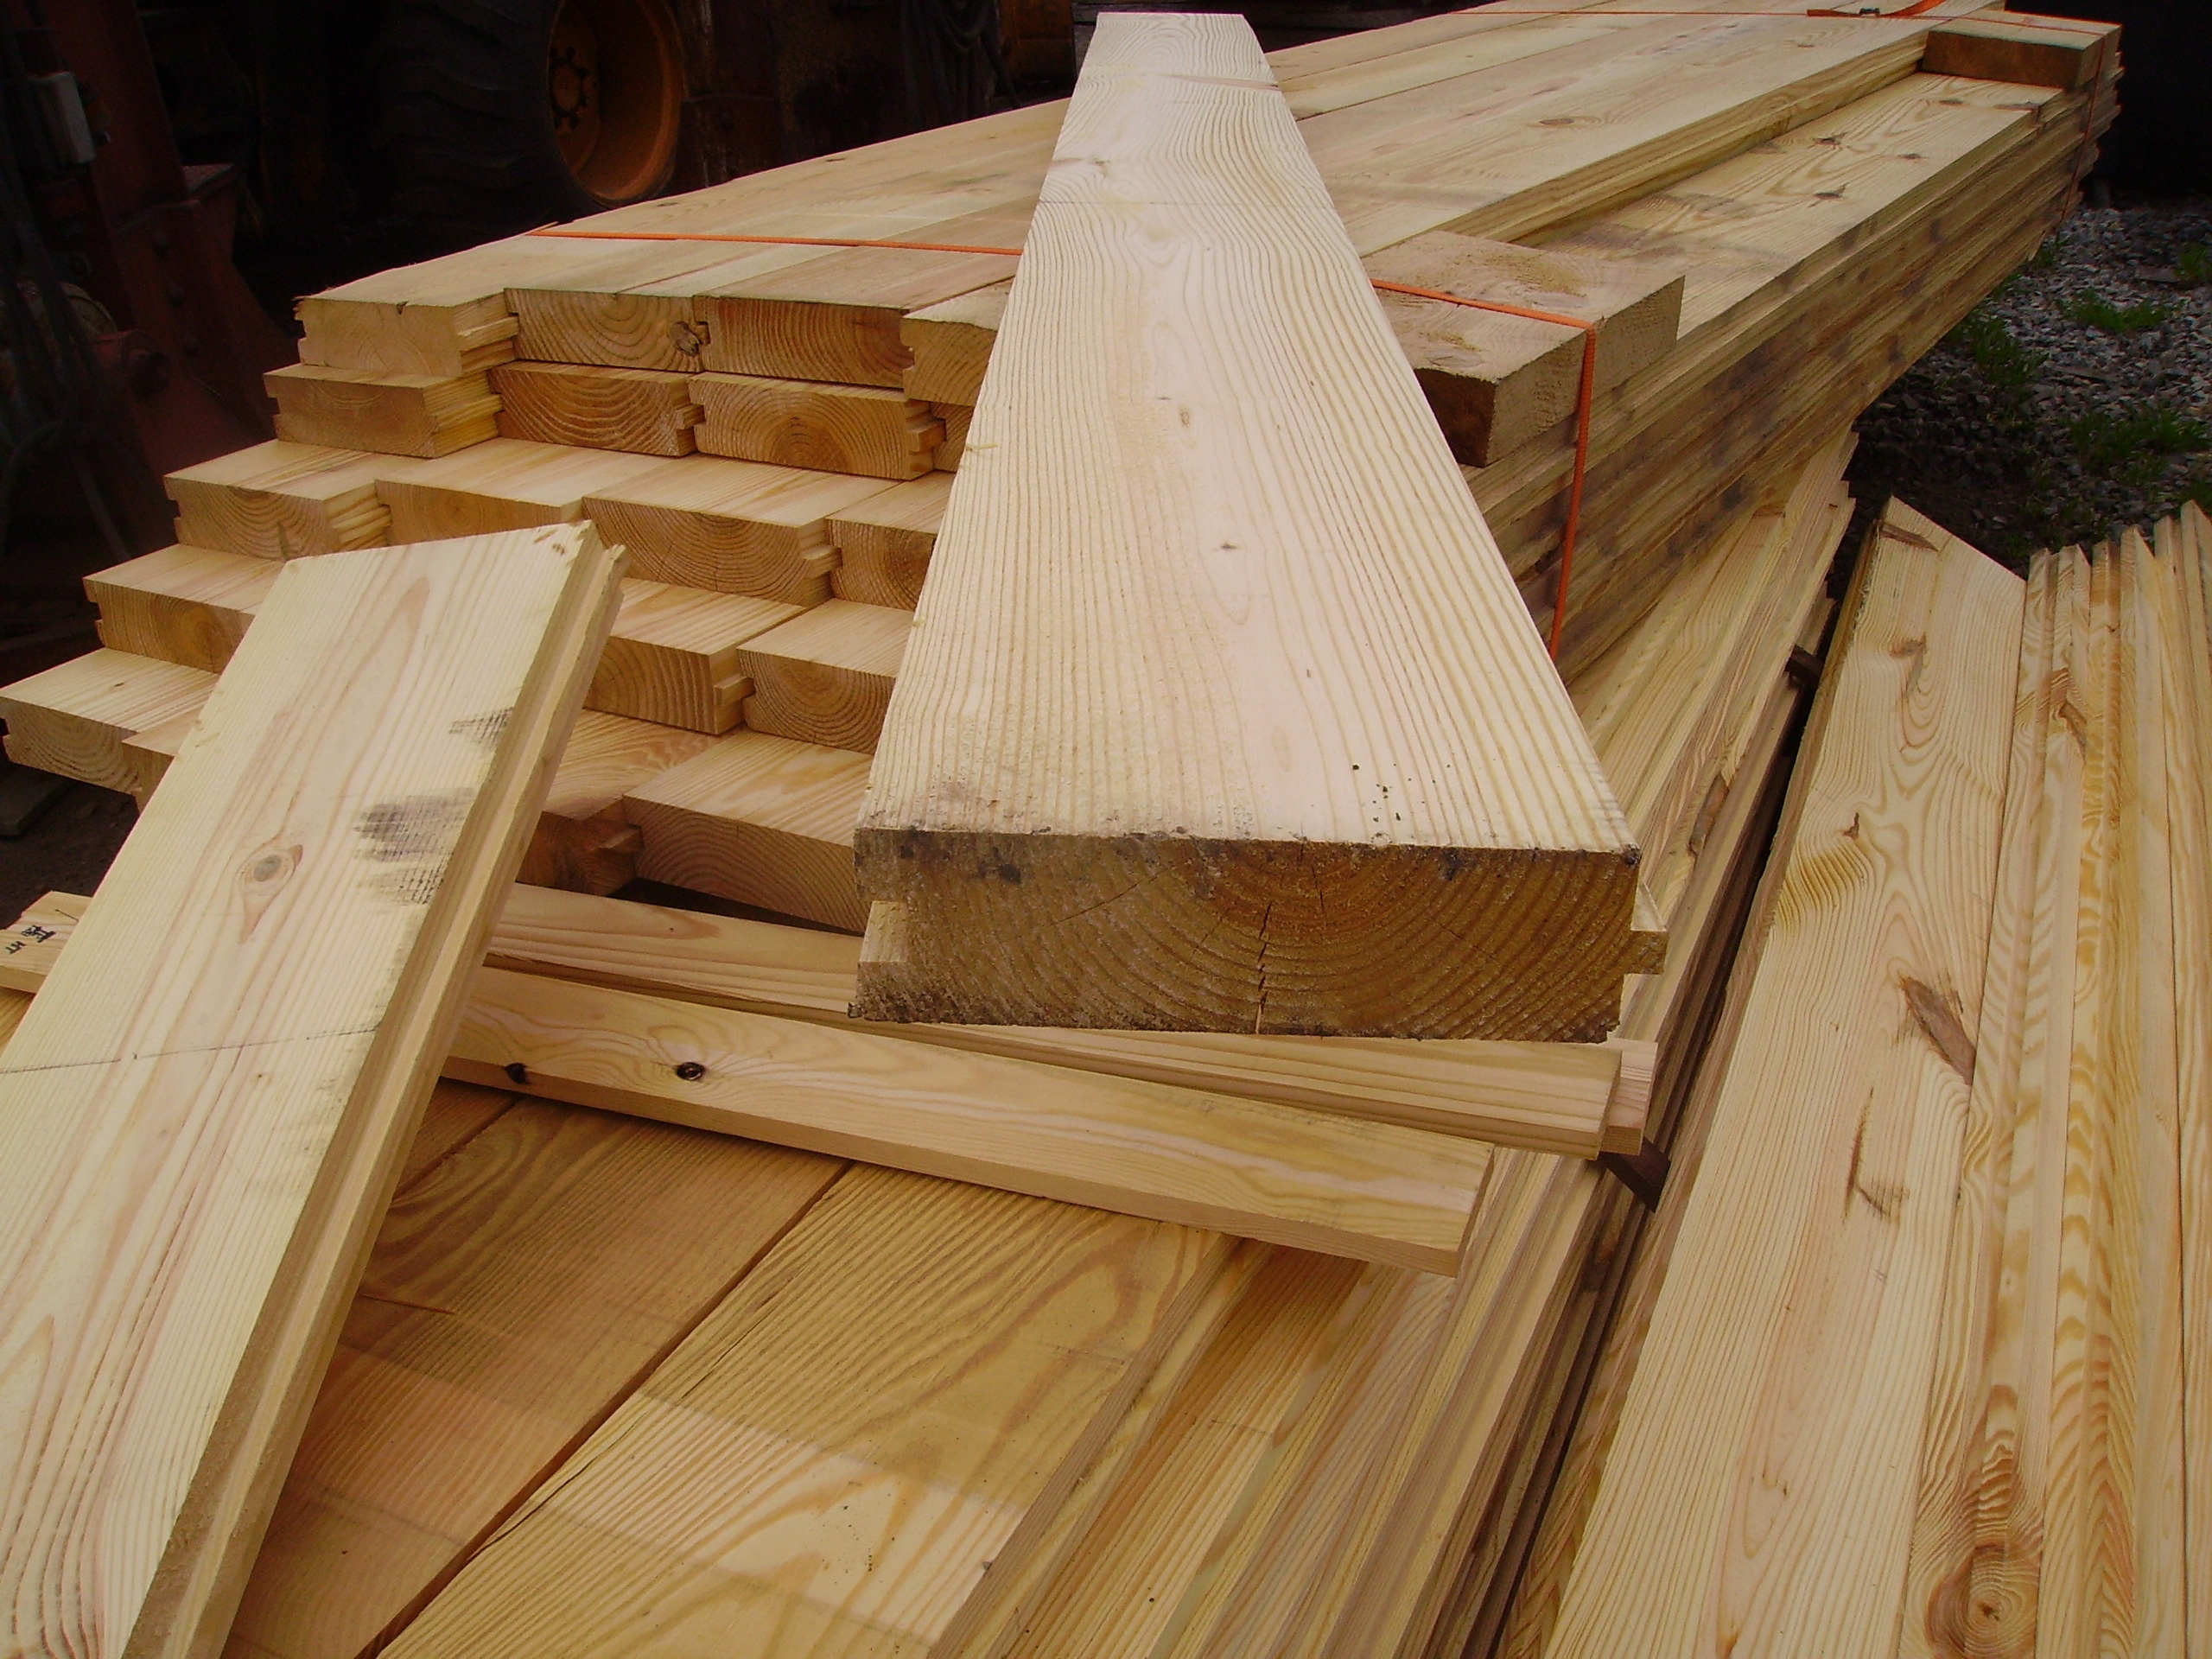 Decking materials tongue and groove decking material for Timber decking materials